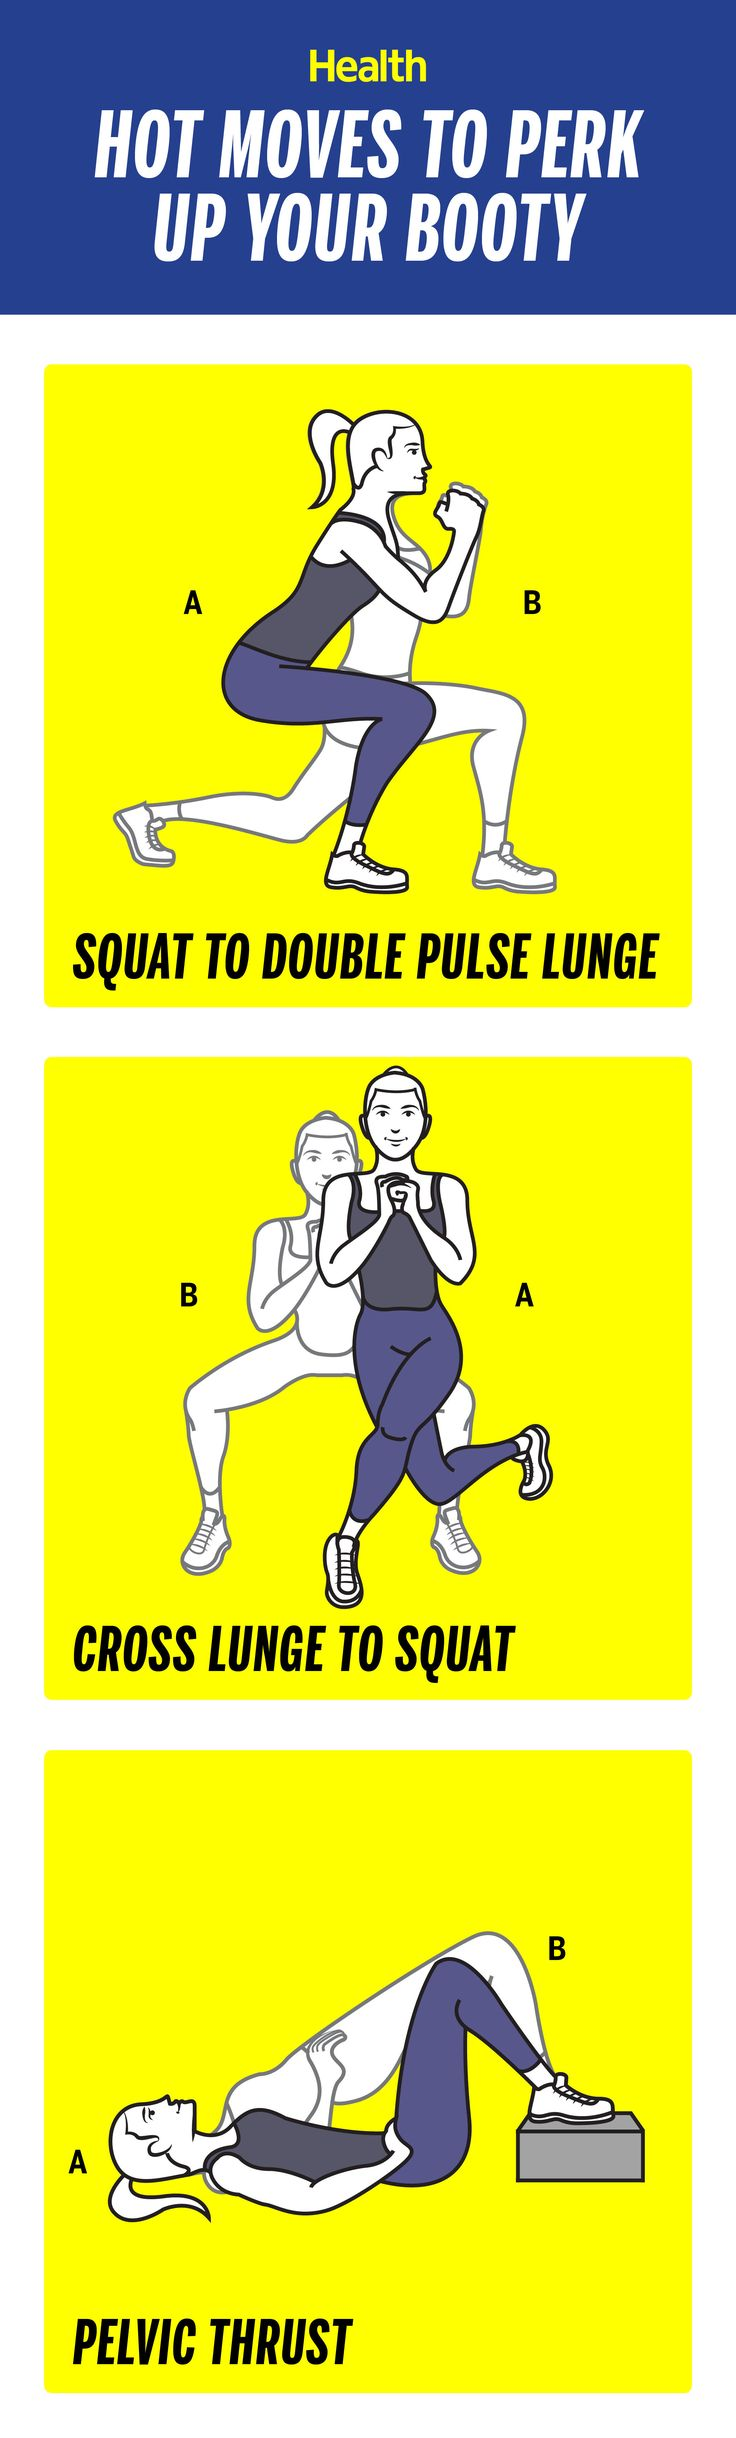 These moves will help boost your booty in no time!